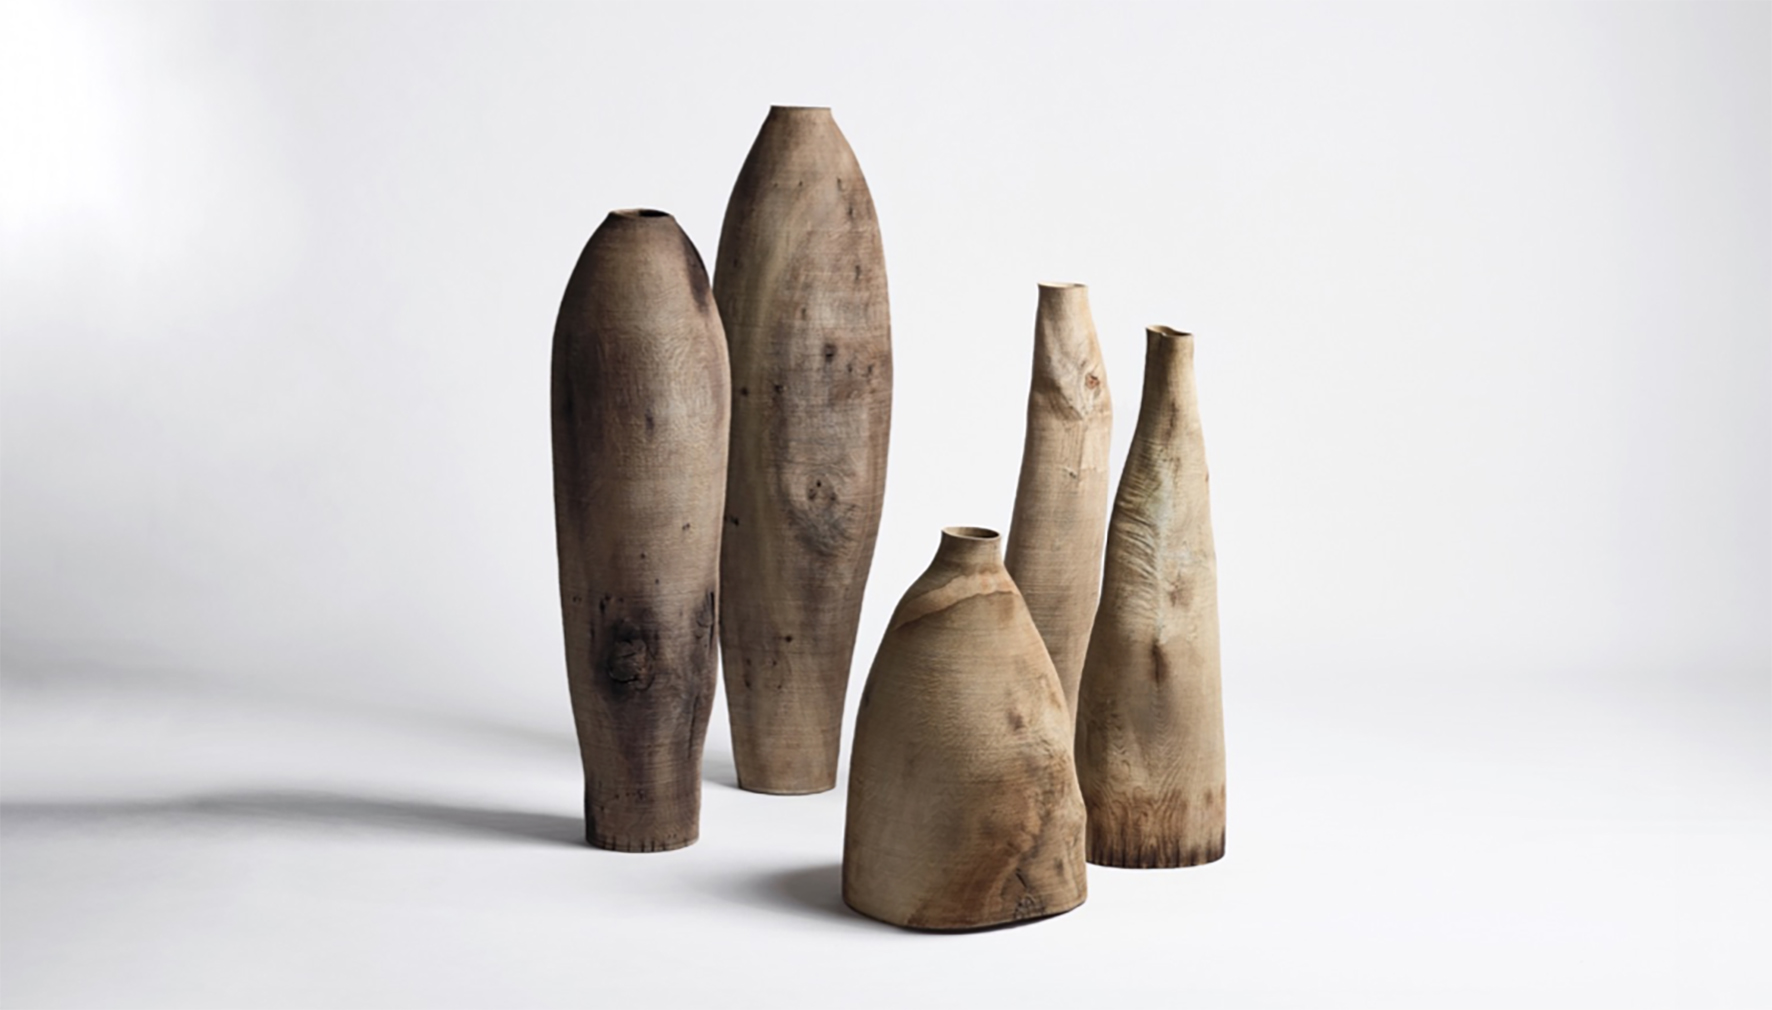 Artist: Ernst Gamperl   Oak Vessels 2019  @ Bernhard Spöttel    Gamperl's oak vessels received the Loewe Craft Prize in 2017 and were on display at Sarah Myerscough Gallery booth - Masterpiece London 2019